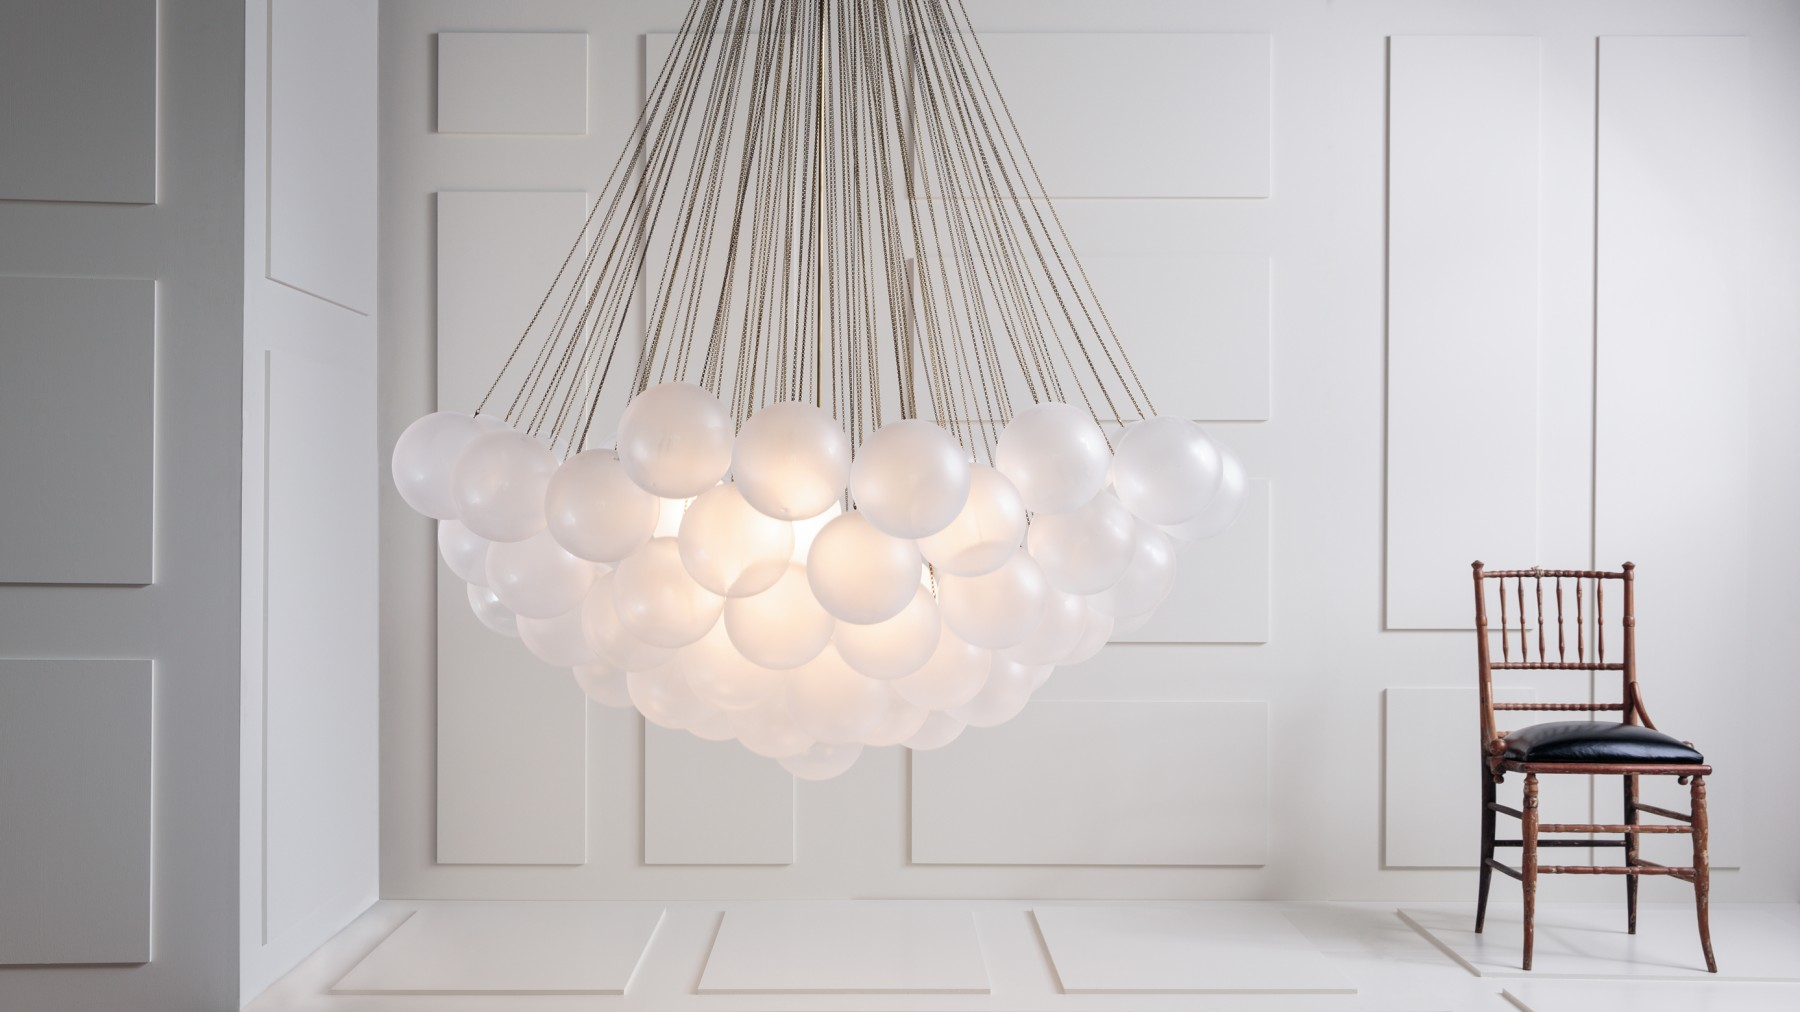 Cloud / Studio Apparatus, frosted glass chandelier by hand to create an uneven texture